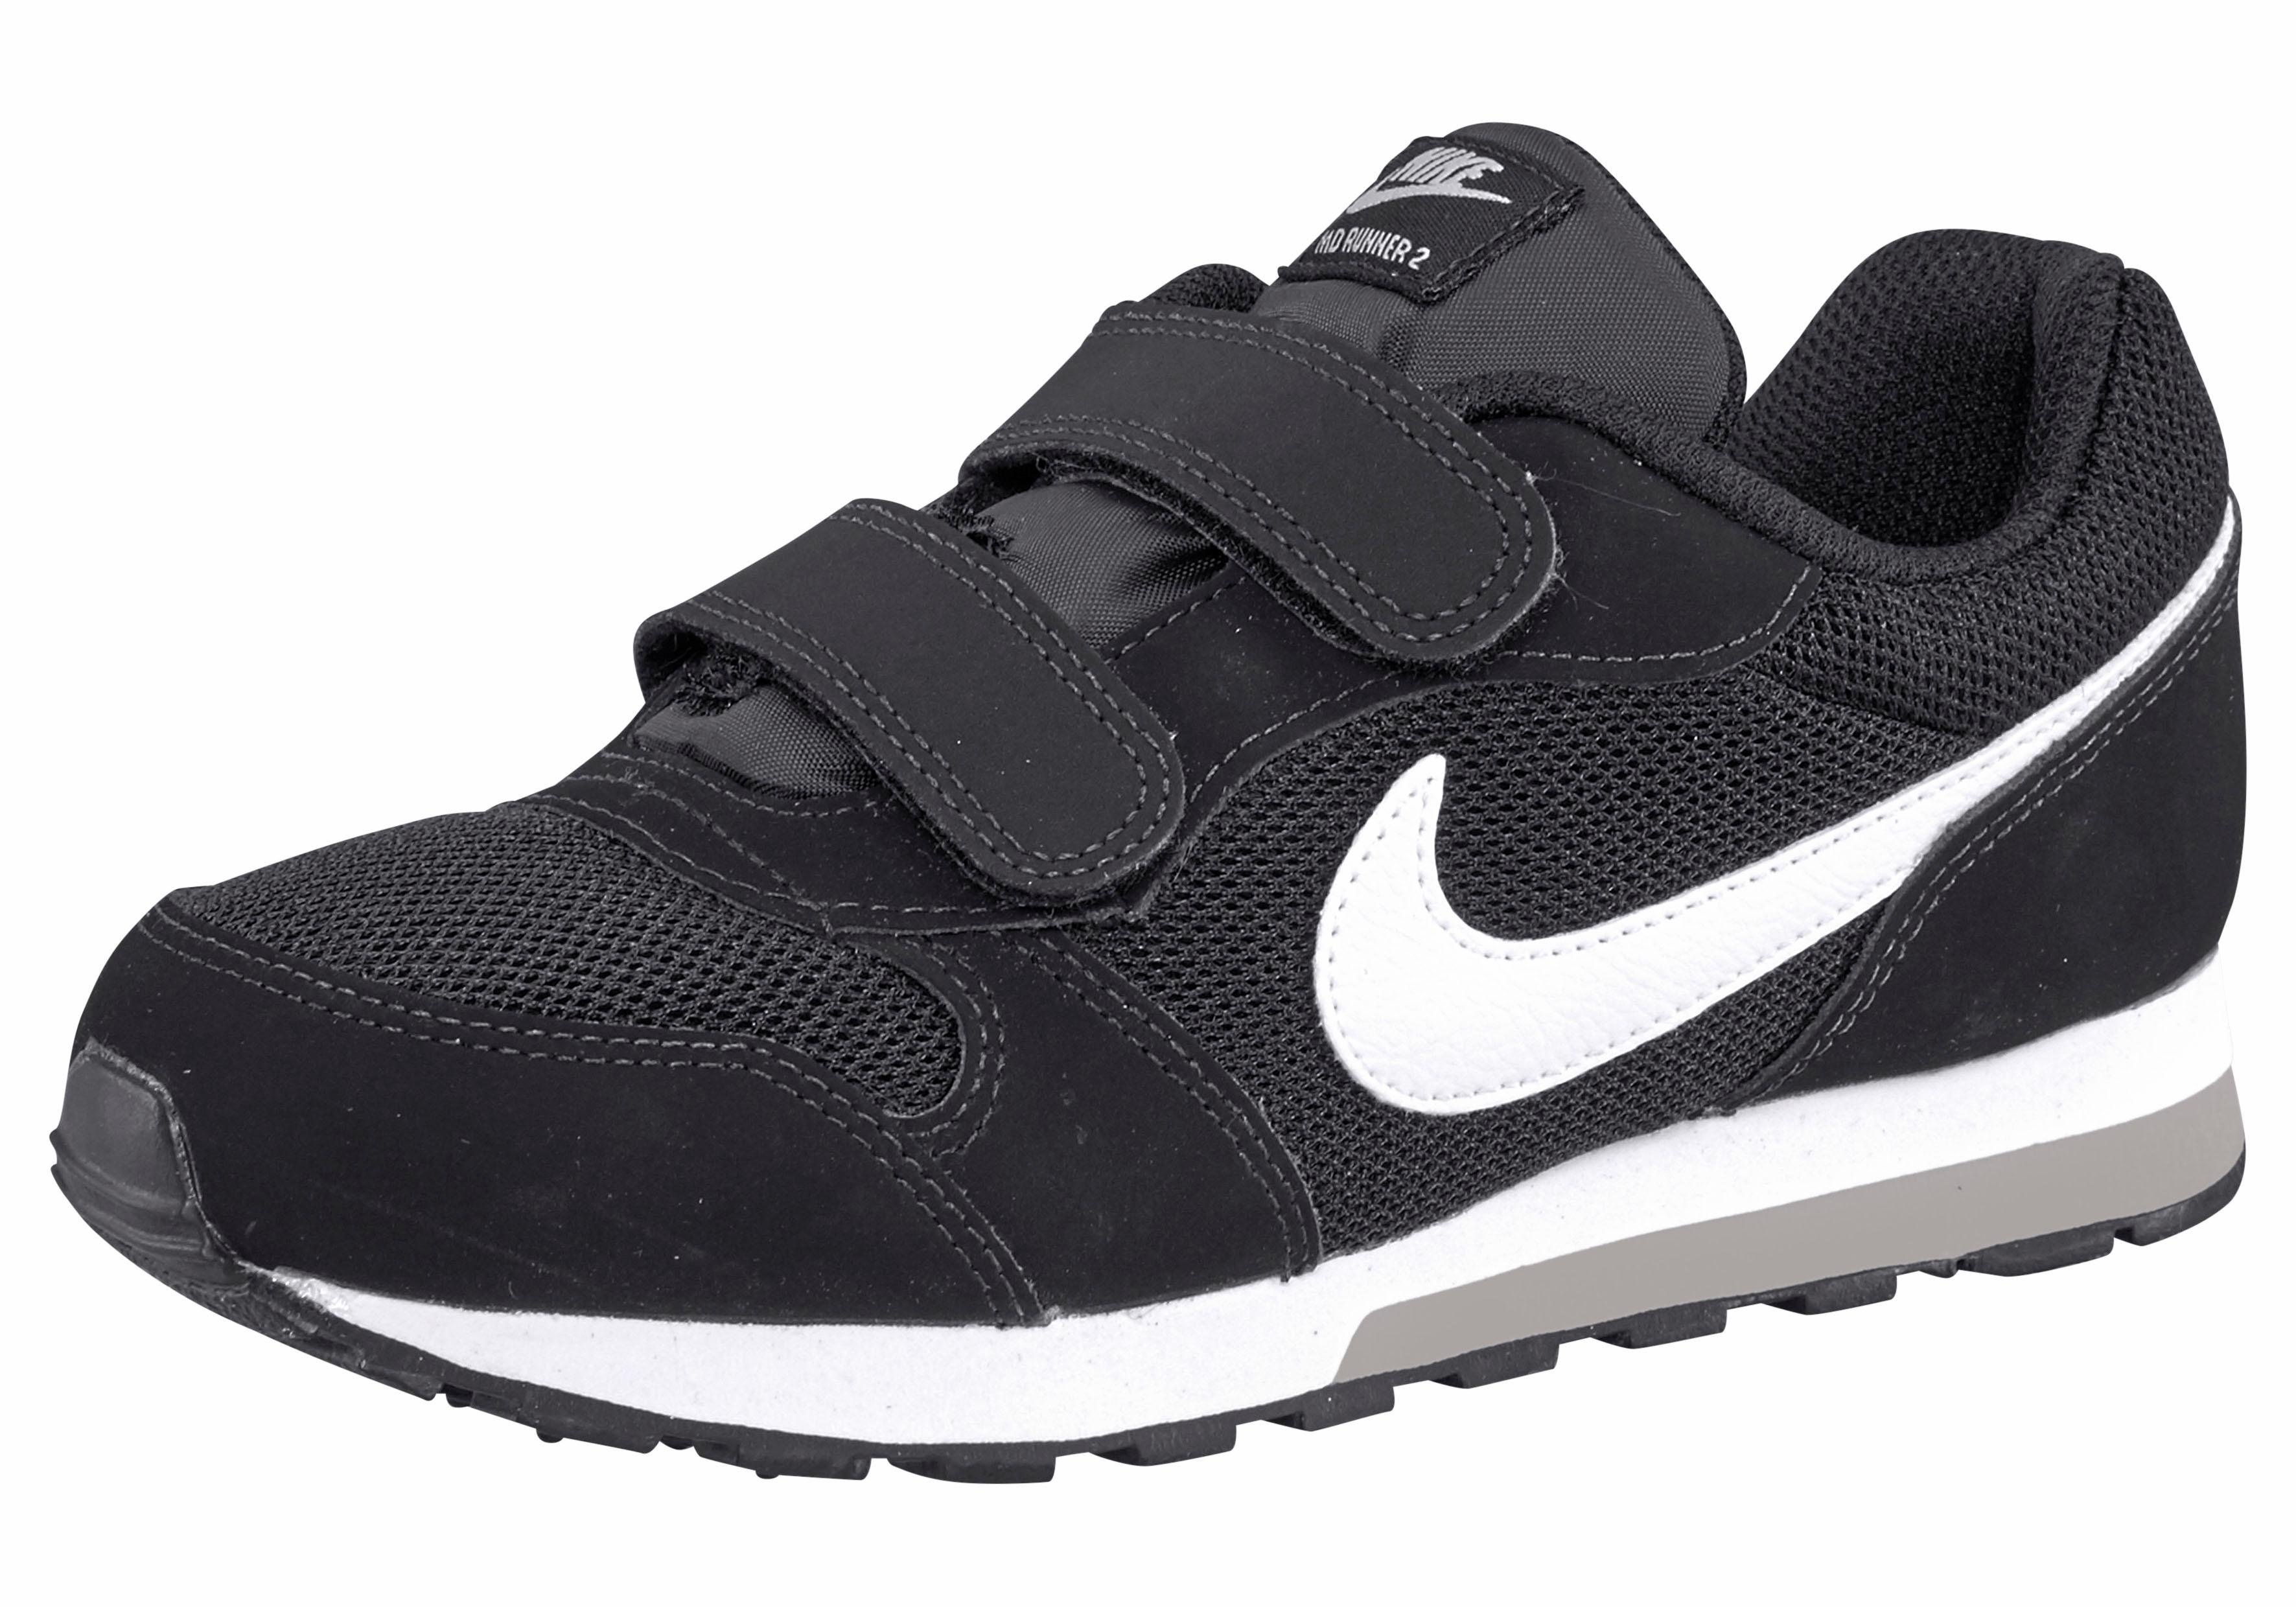 finest selection 5352e b5dce Afbeeldingsbron  NIKE sneakers »MD Runner 2 (PSV)«